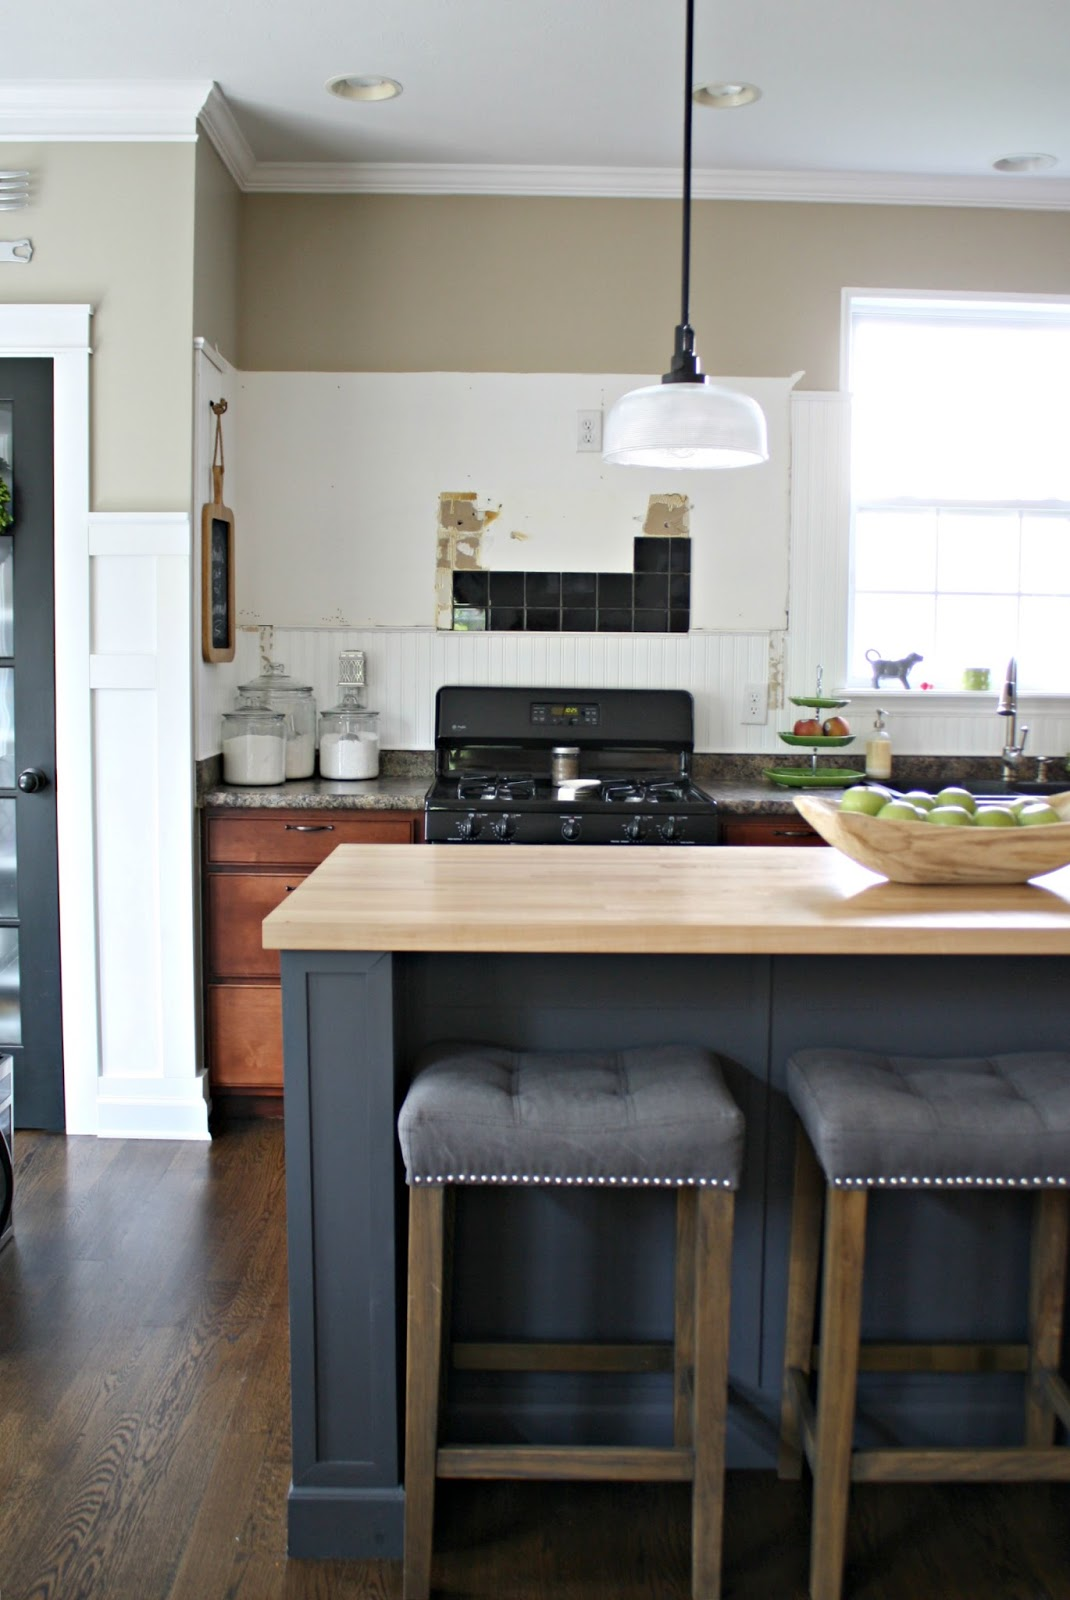 A kitchen reno update from thrifty decor chick for Kitchen without wall units